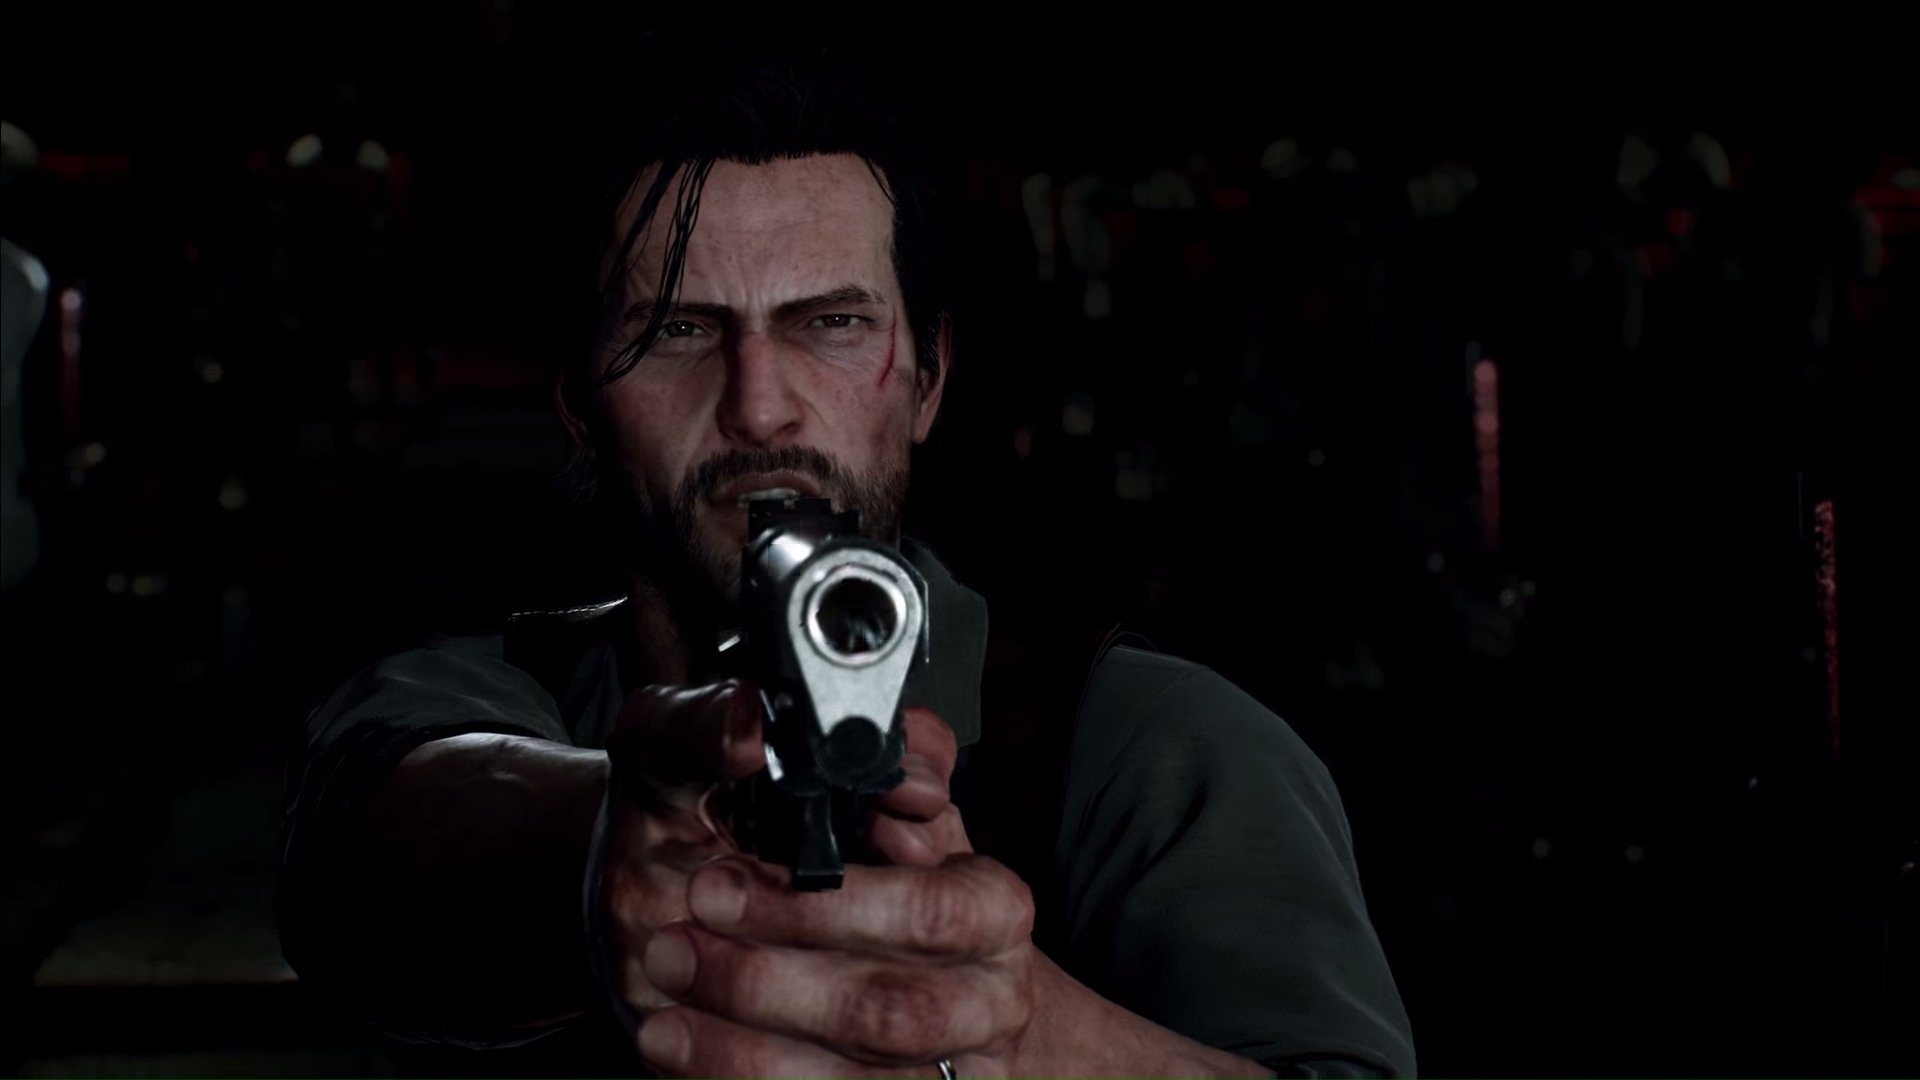 The Evil Within 2 Wallpaper 01 1920x1080: Demo Arrives For The Evil Within 2